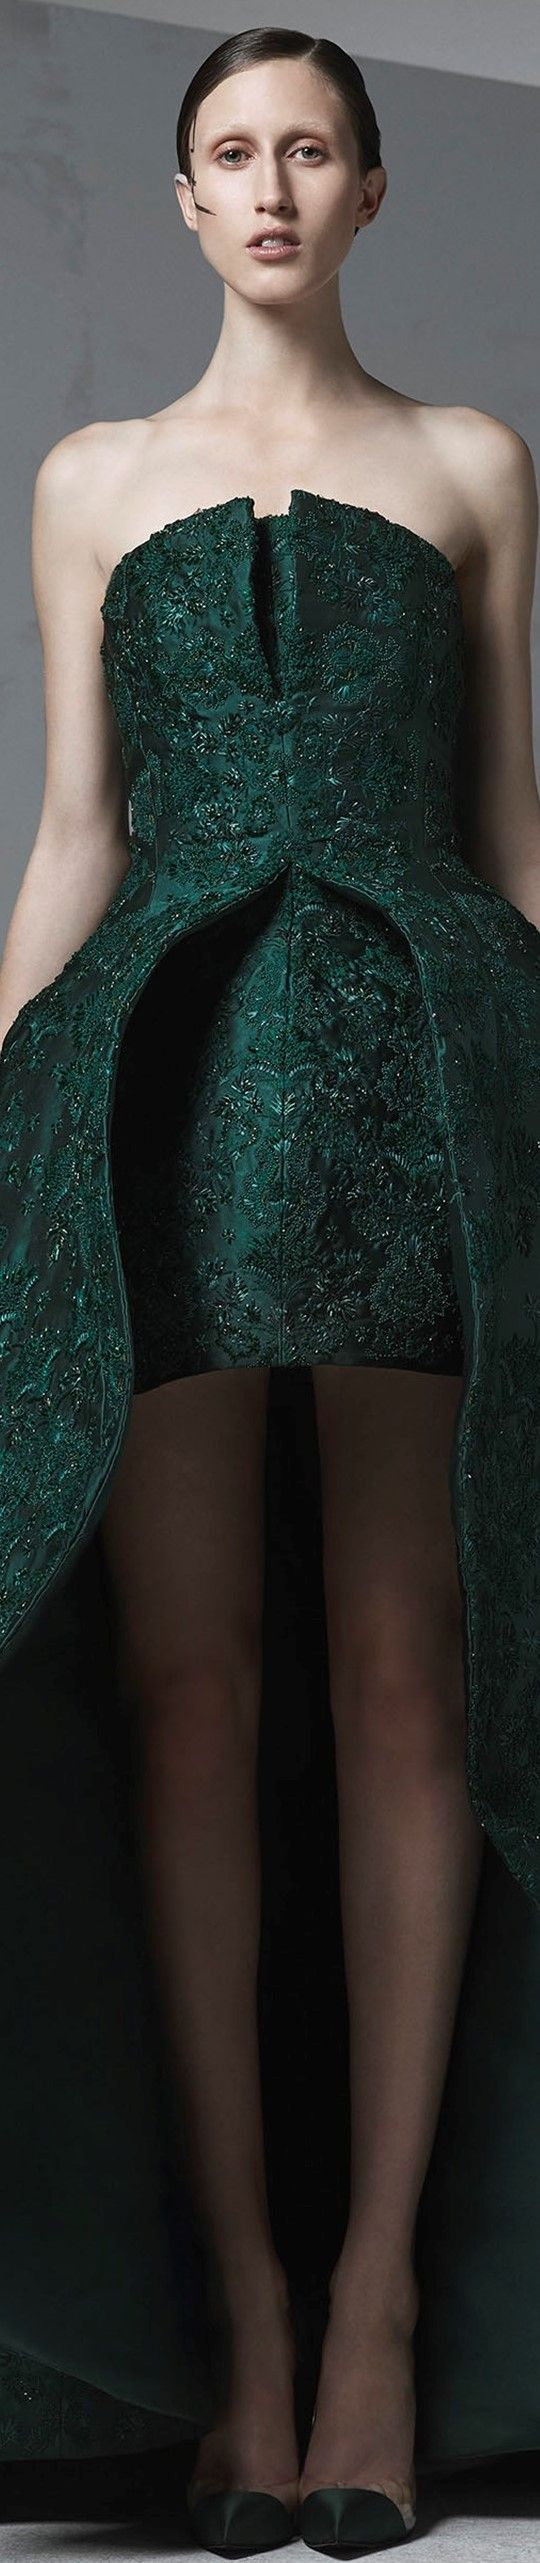 Photo of Ashi Studio Fall Winter 2017 2018 RTW Lookbook Collection Pi…